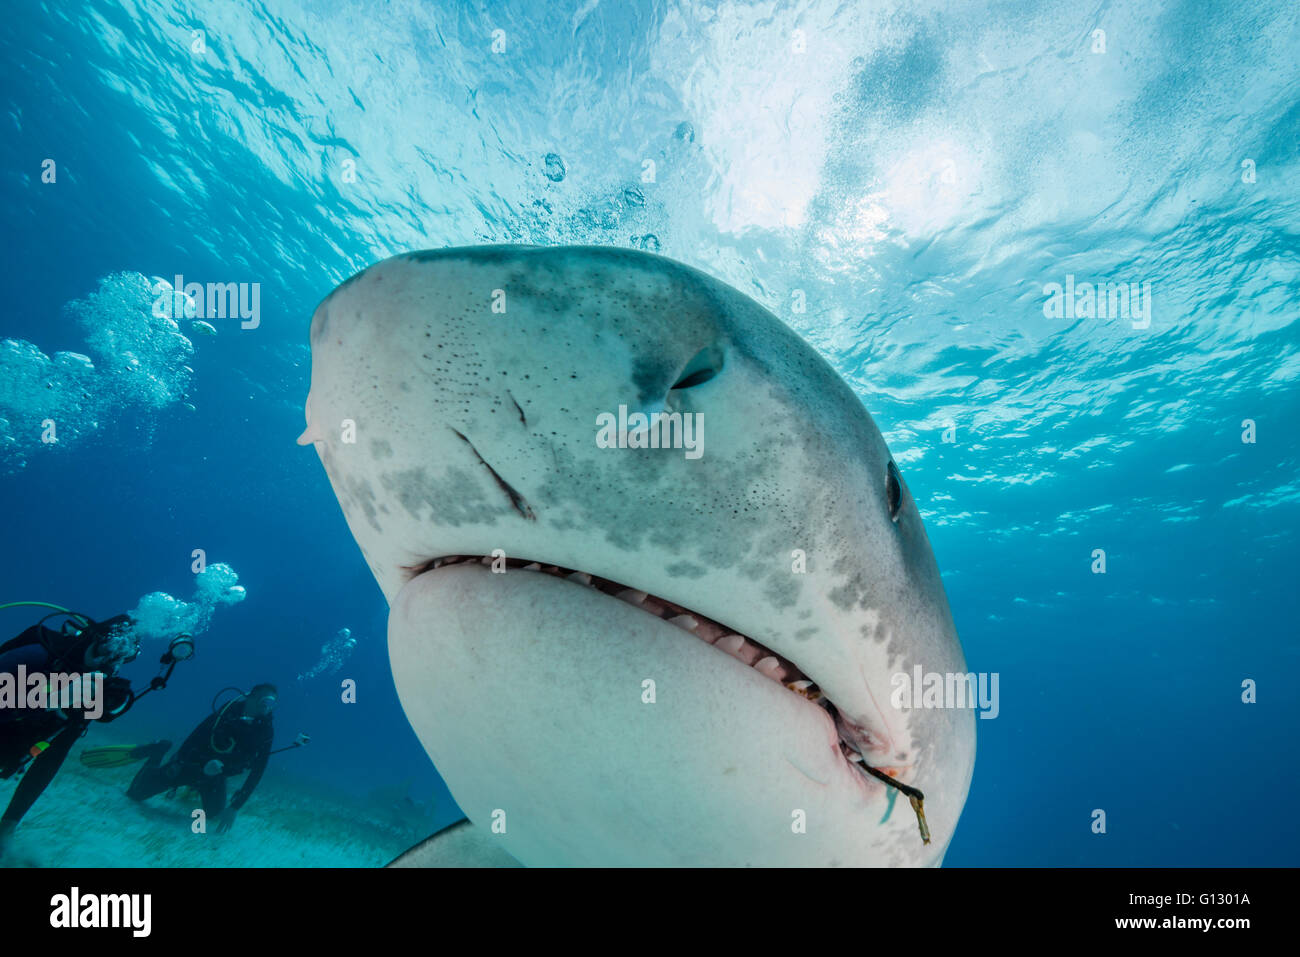 Tiger shark, galeocerdo cuvier, underwater in The Bahamas, Caribbean - Stock Image